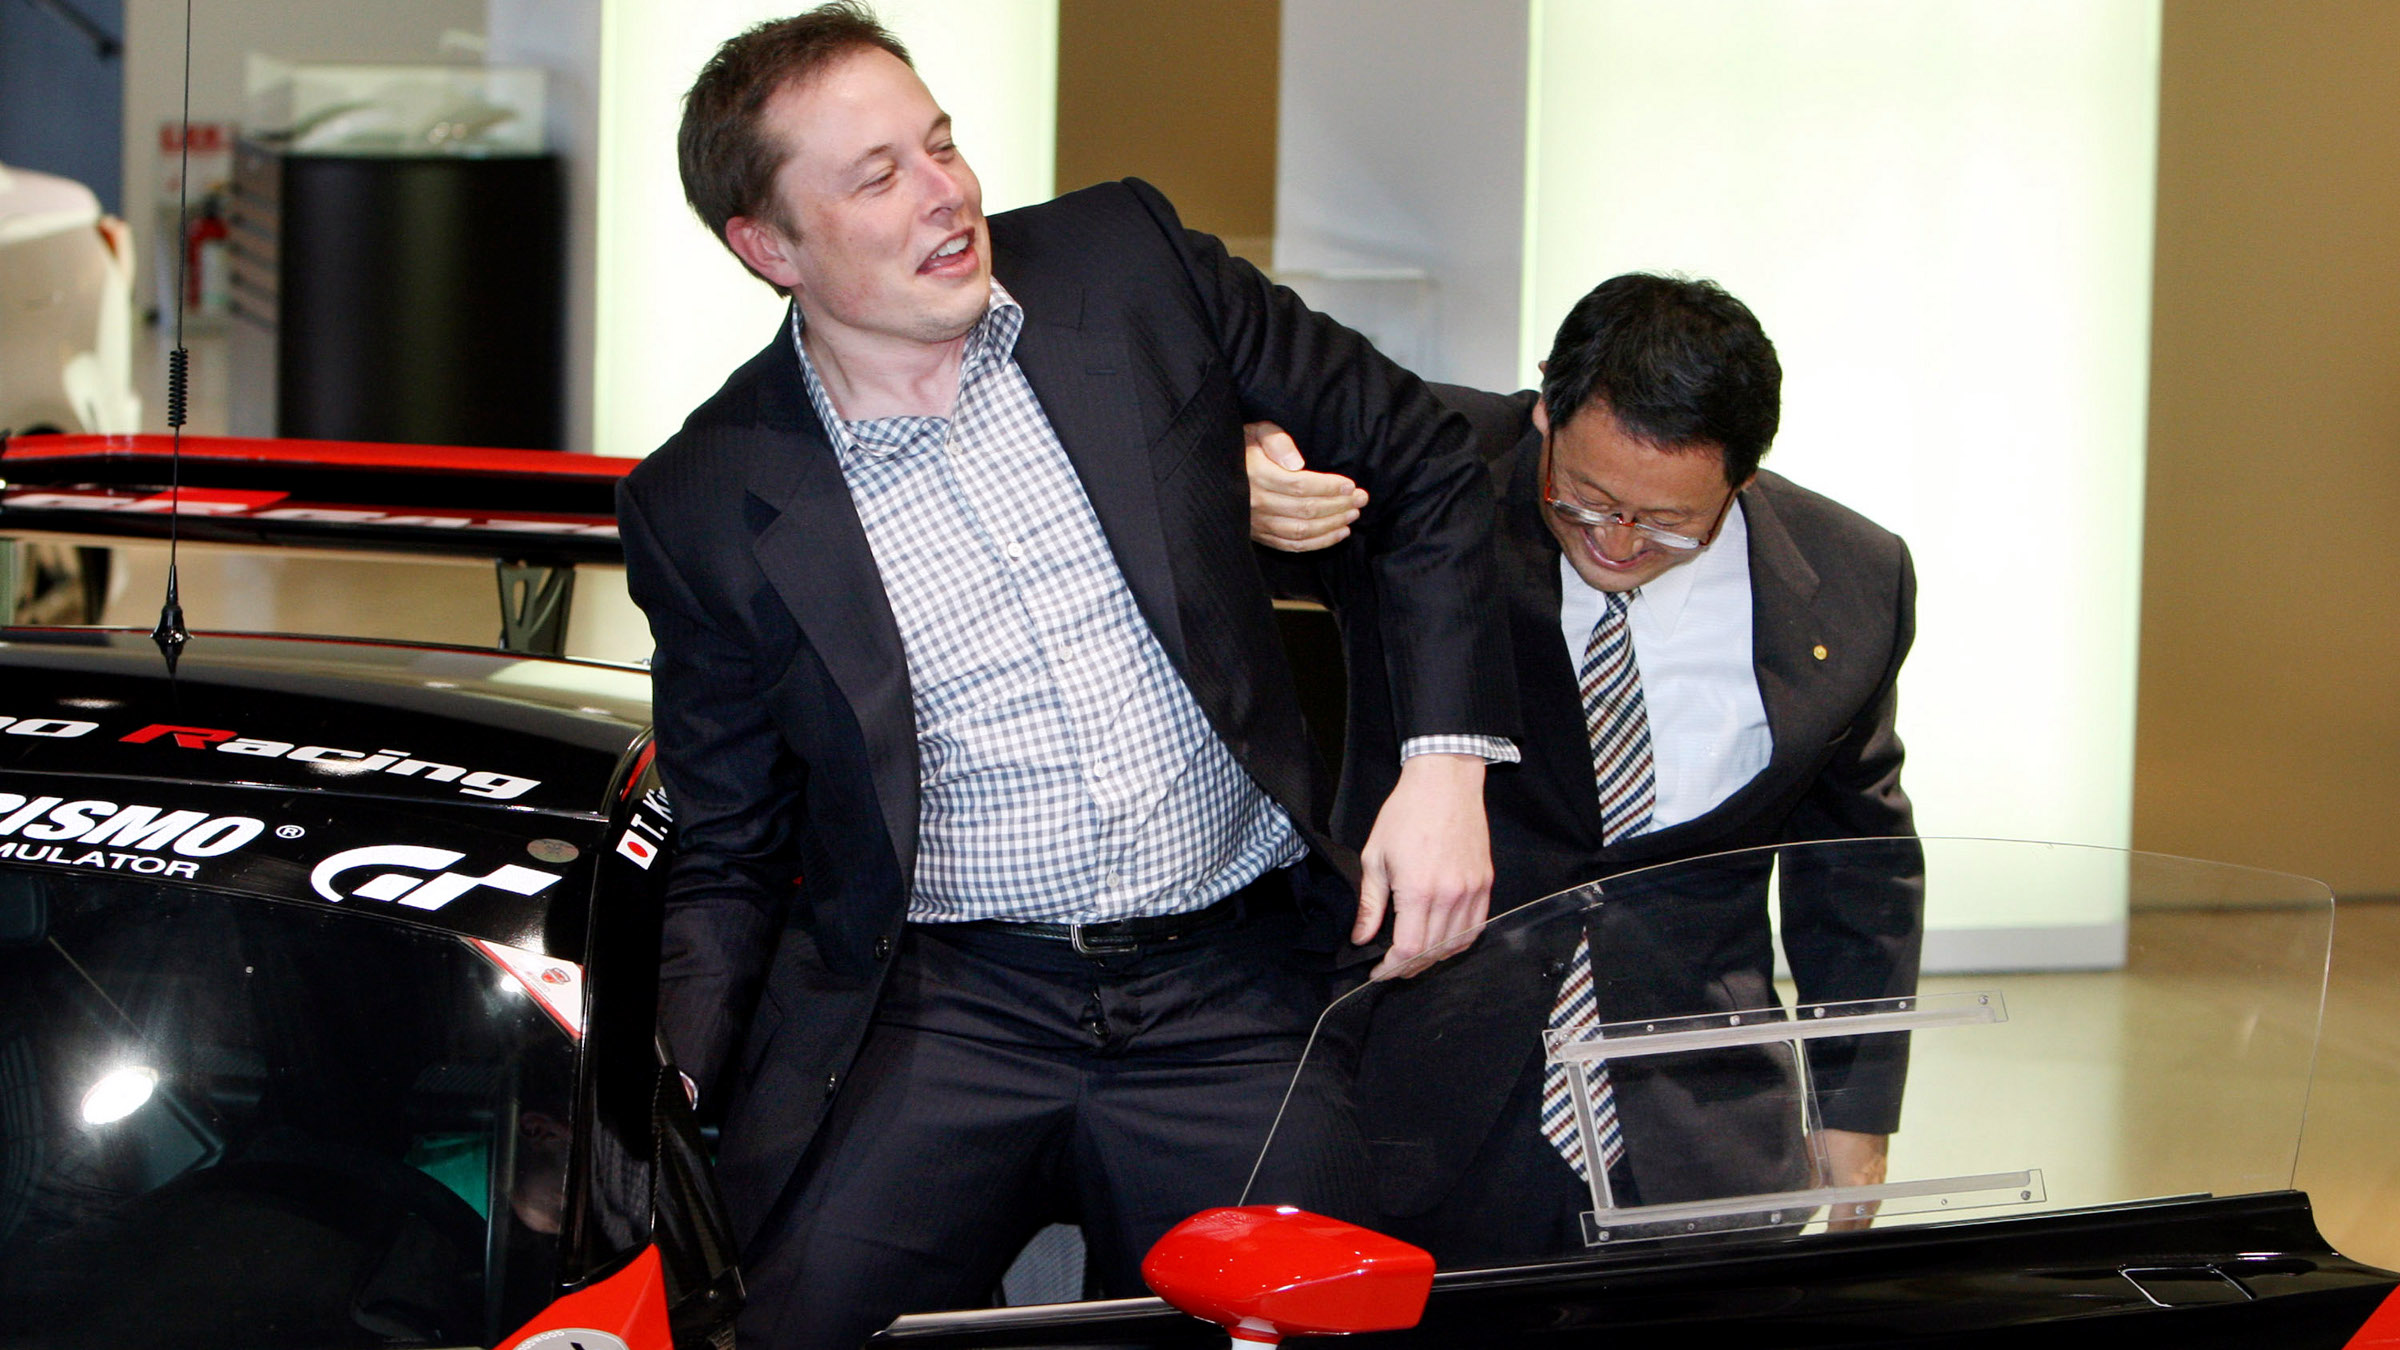 Toyota CEO Akio Toyoda,right, helps Tesla CEO Elon Musk for leaves from Lexus racing car at Toyota  showroom  in Tokyo, Friday, Nov 12, 2010.